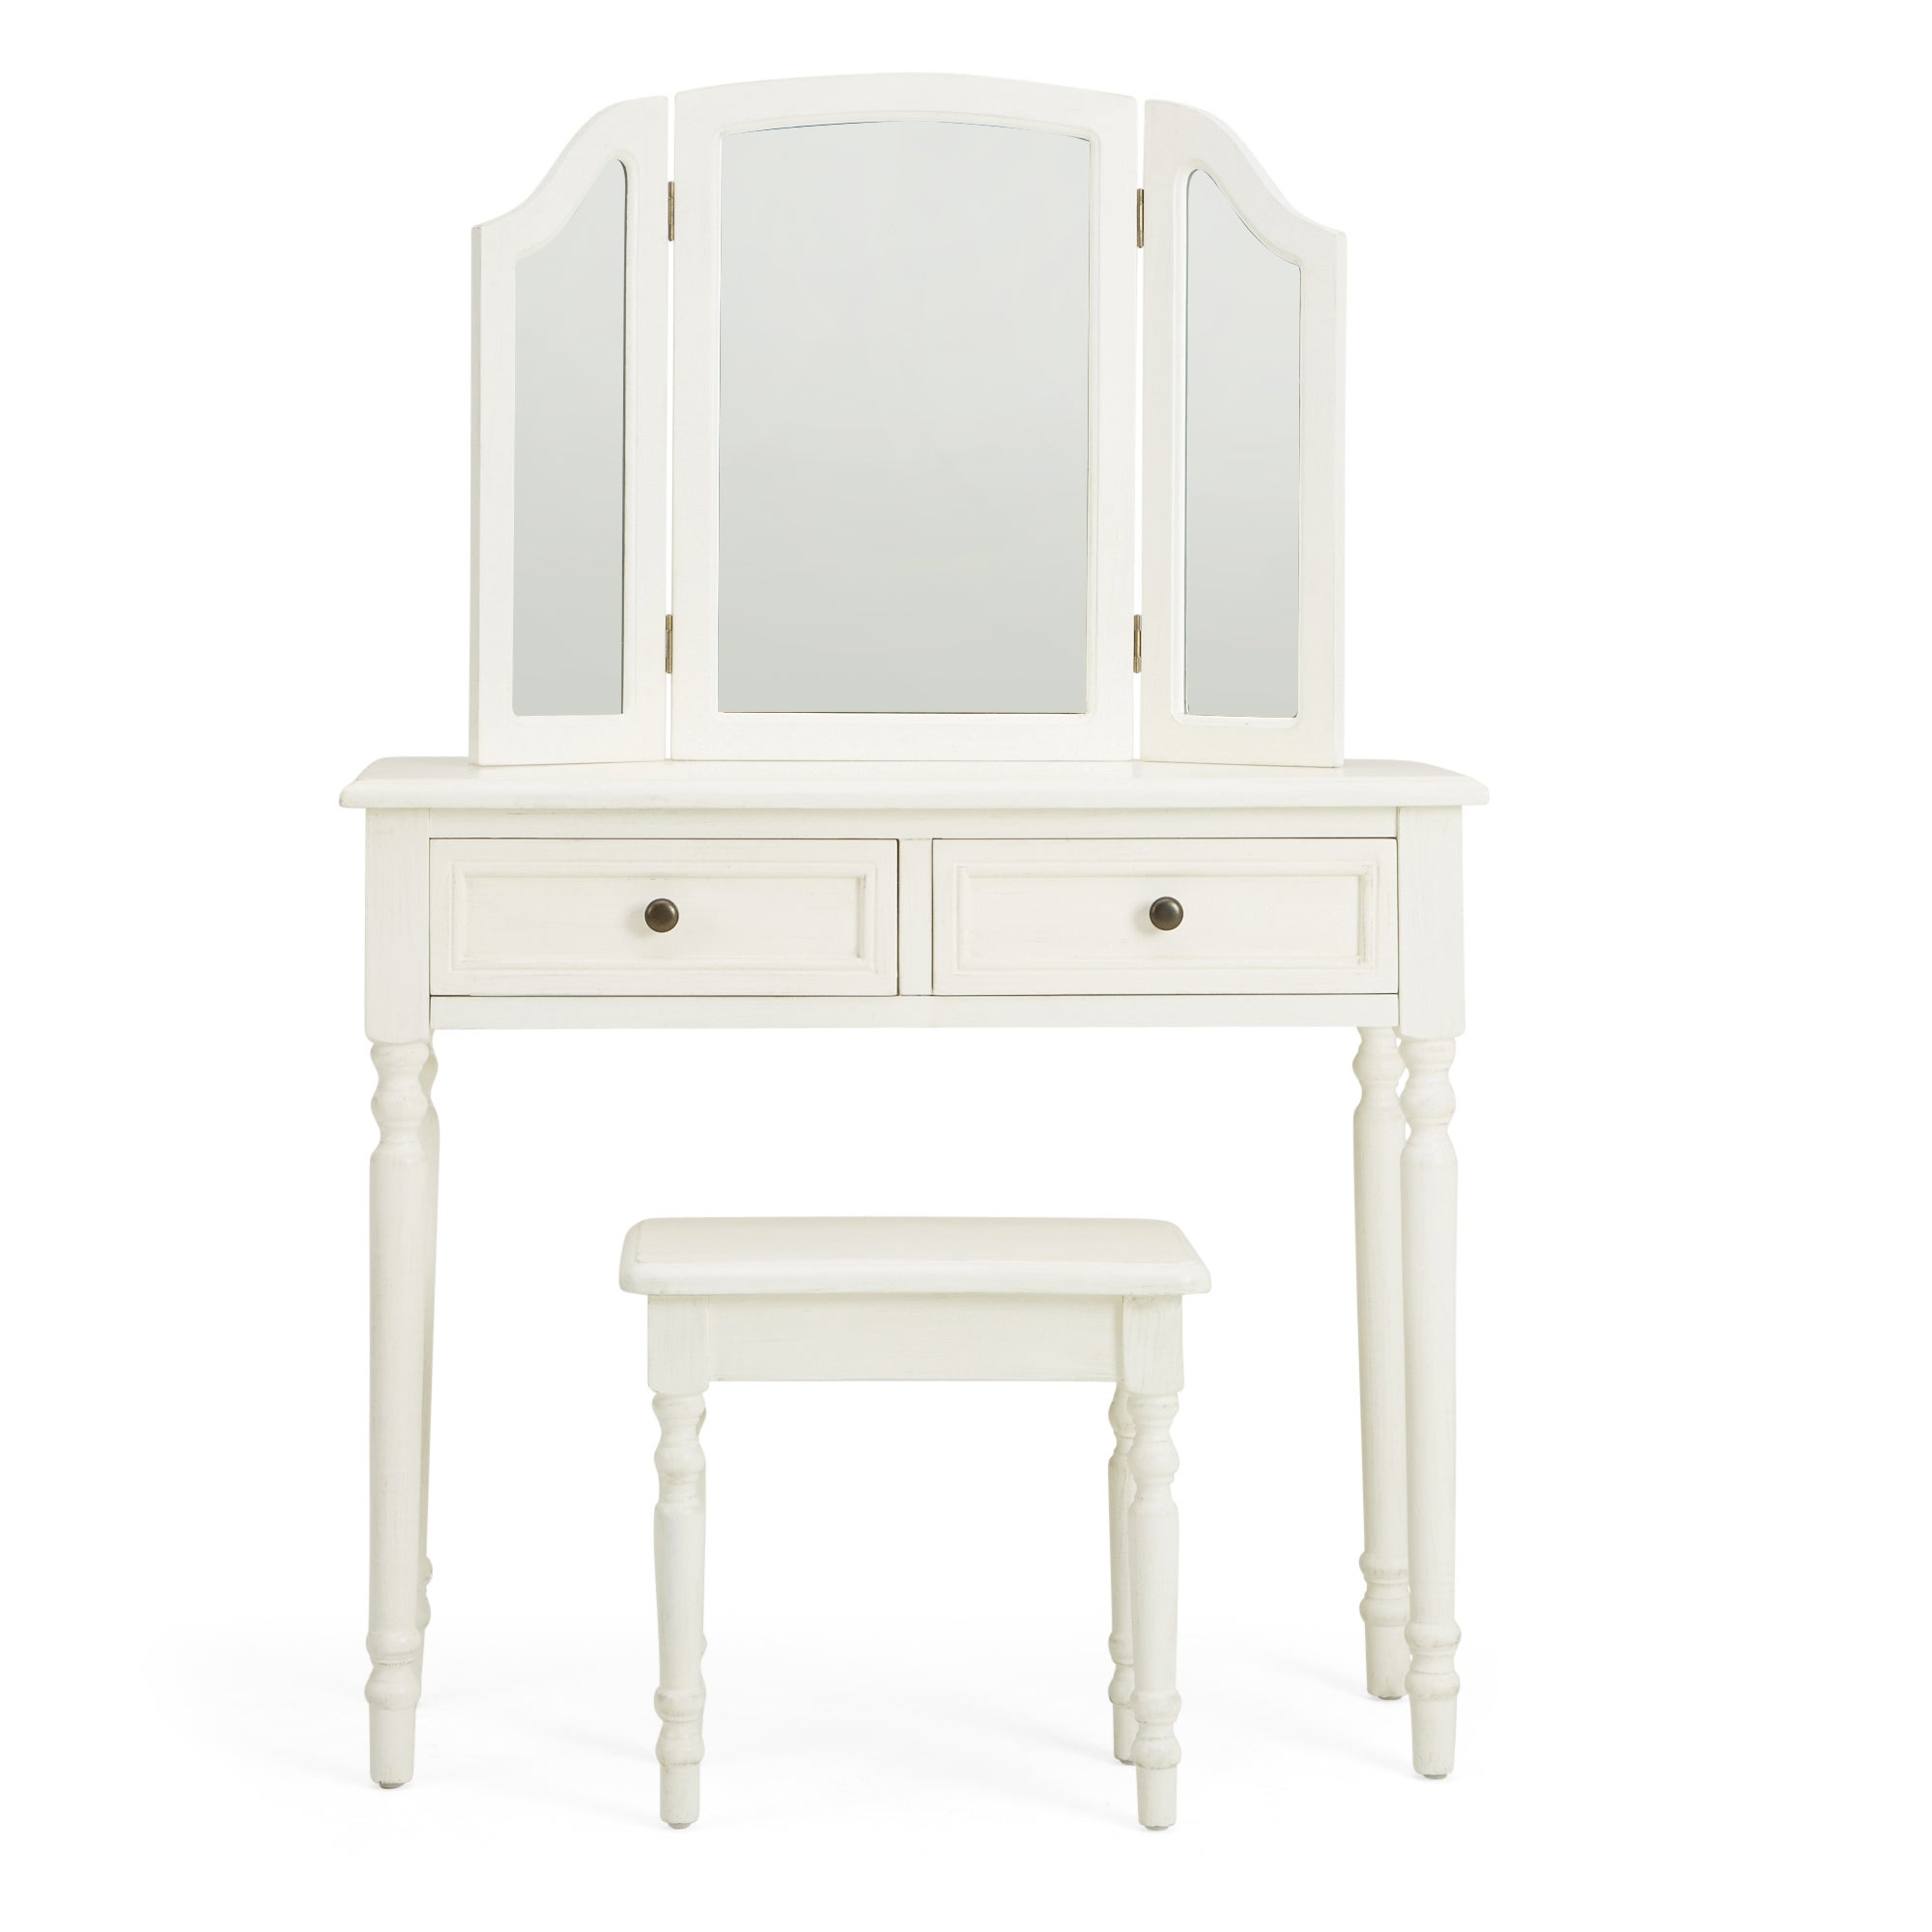 Lucy Cane Cream Dressing Table Set White